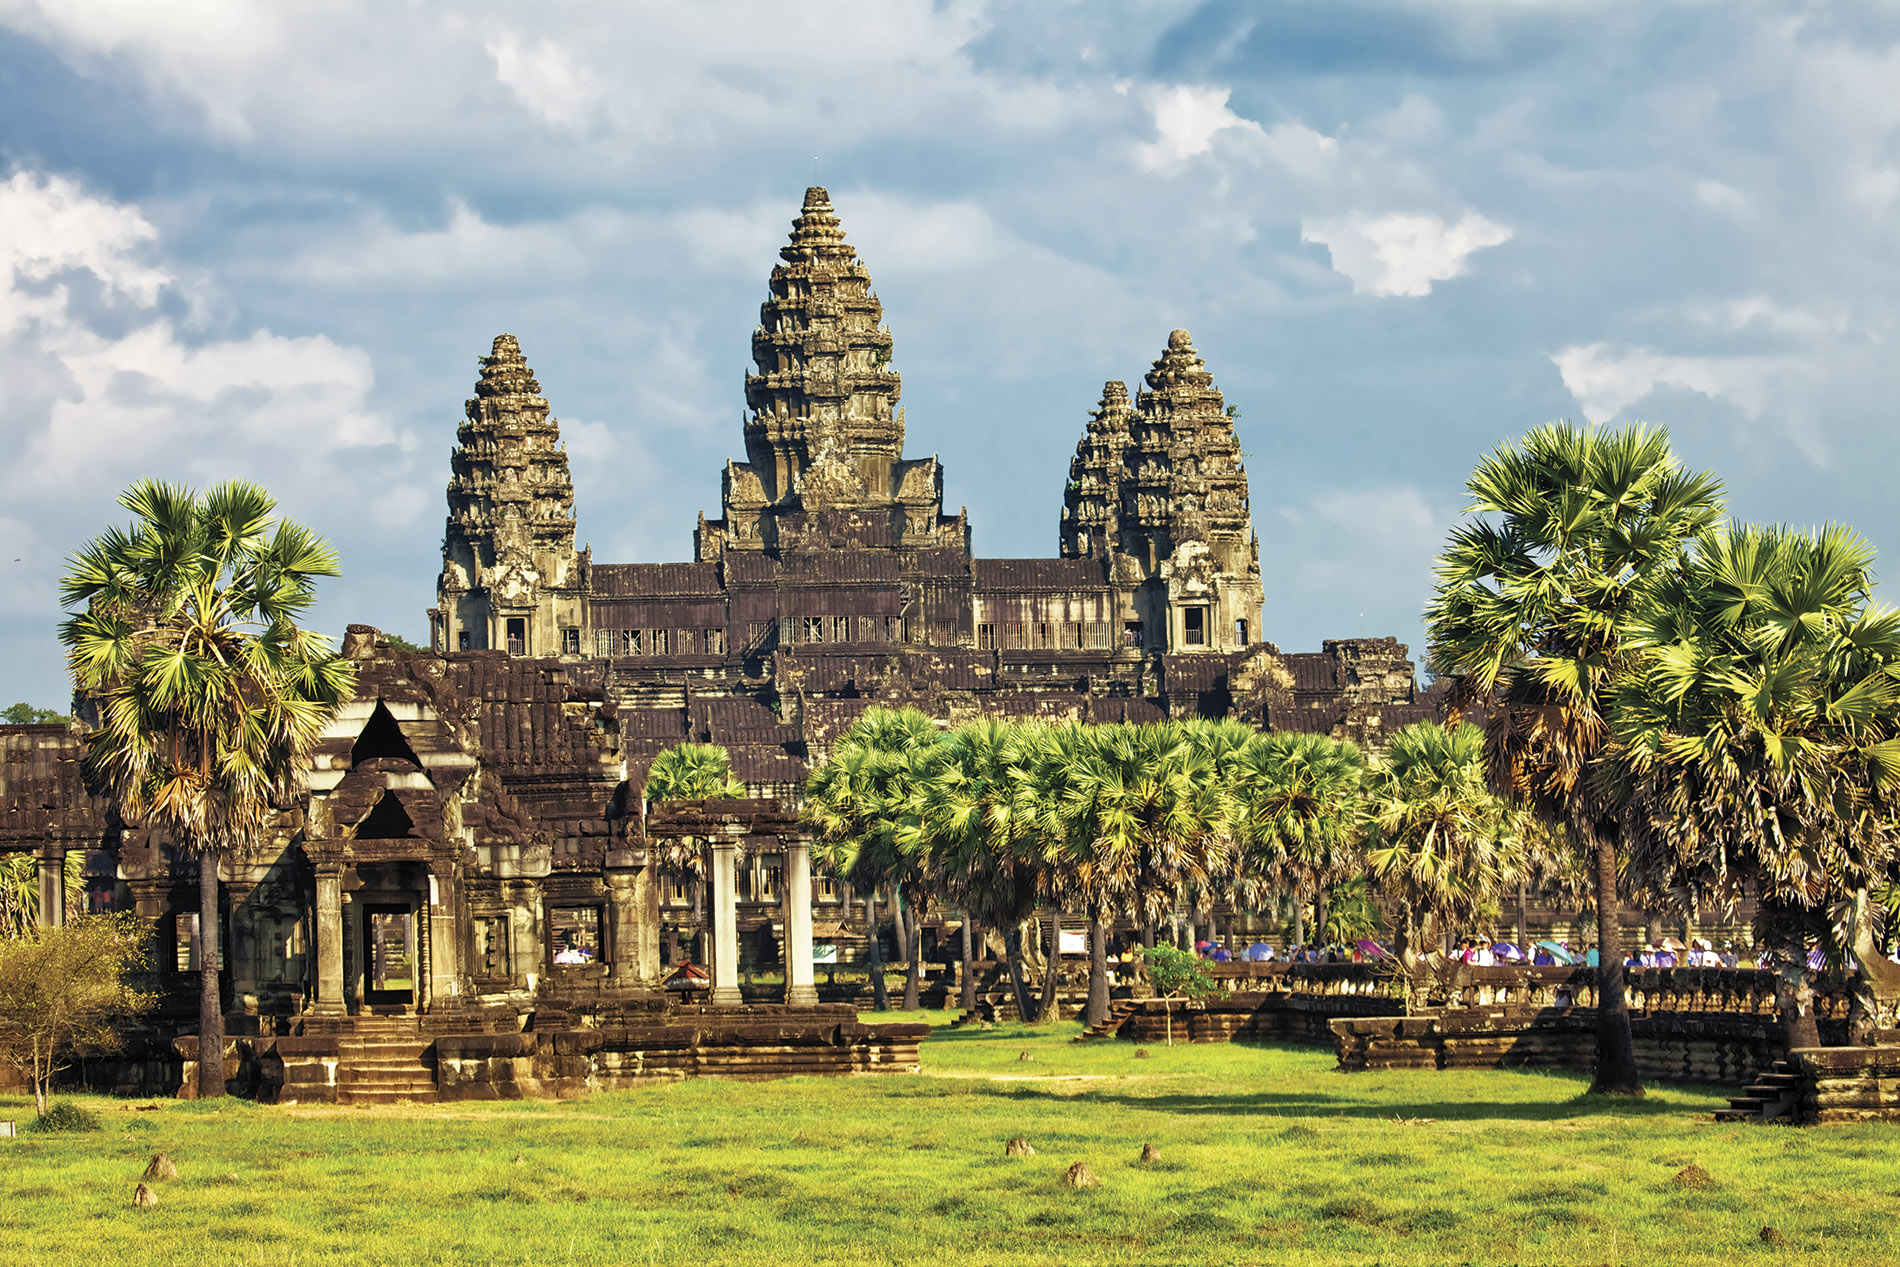 a large green field with trees in the background with Angkor Wat in the background